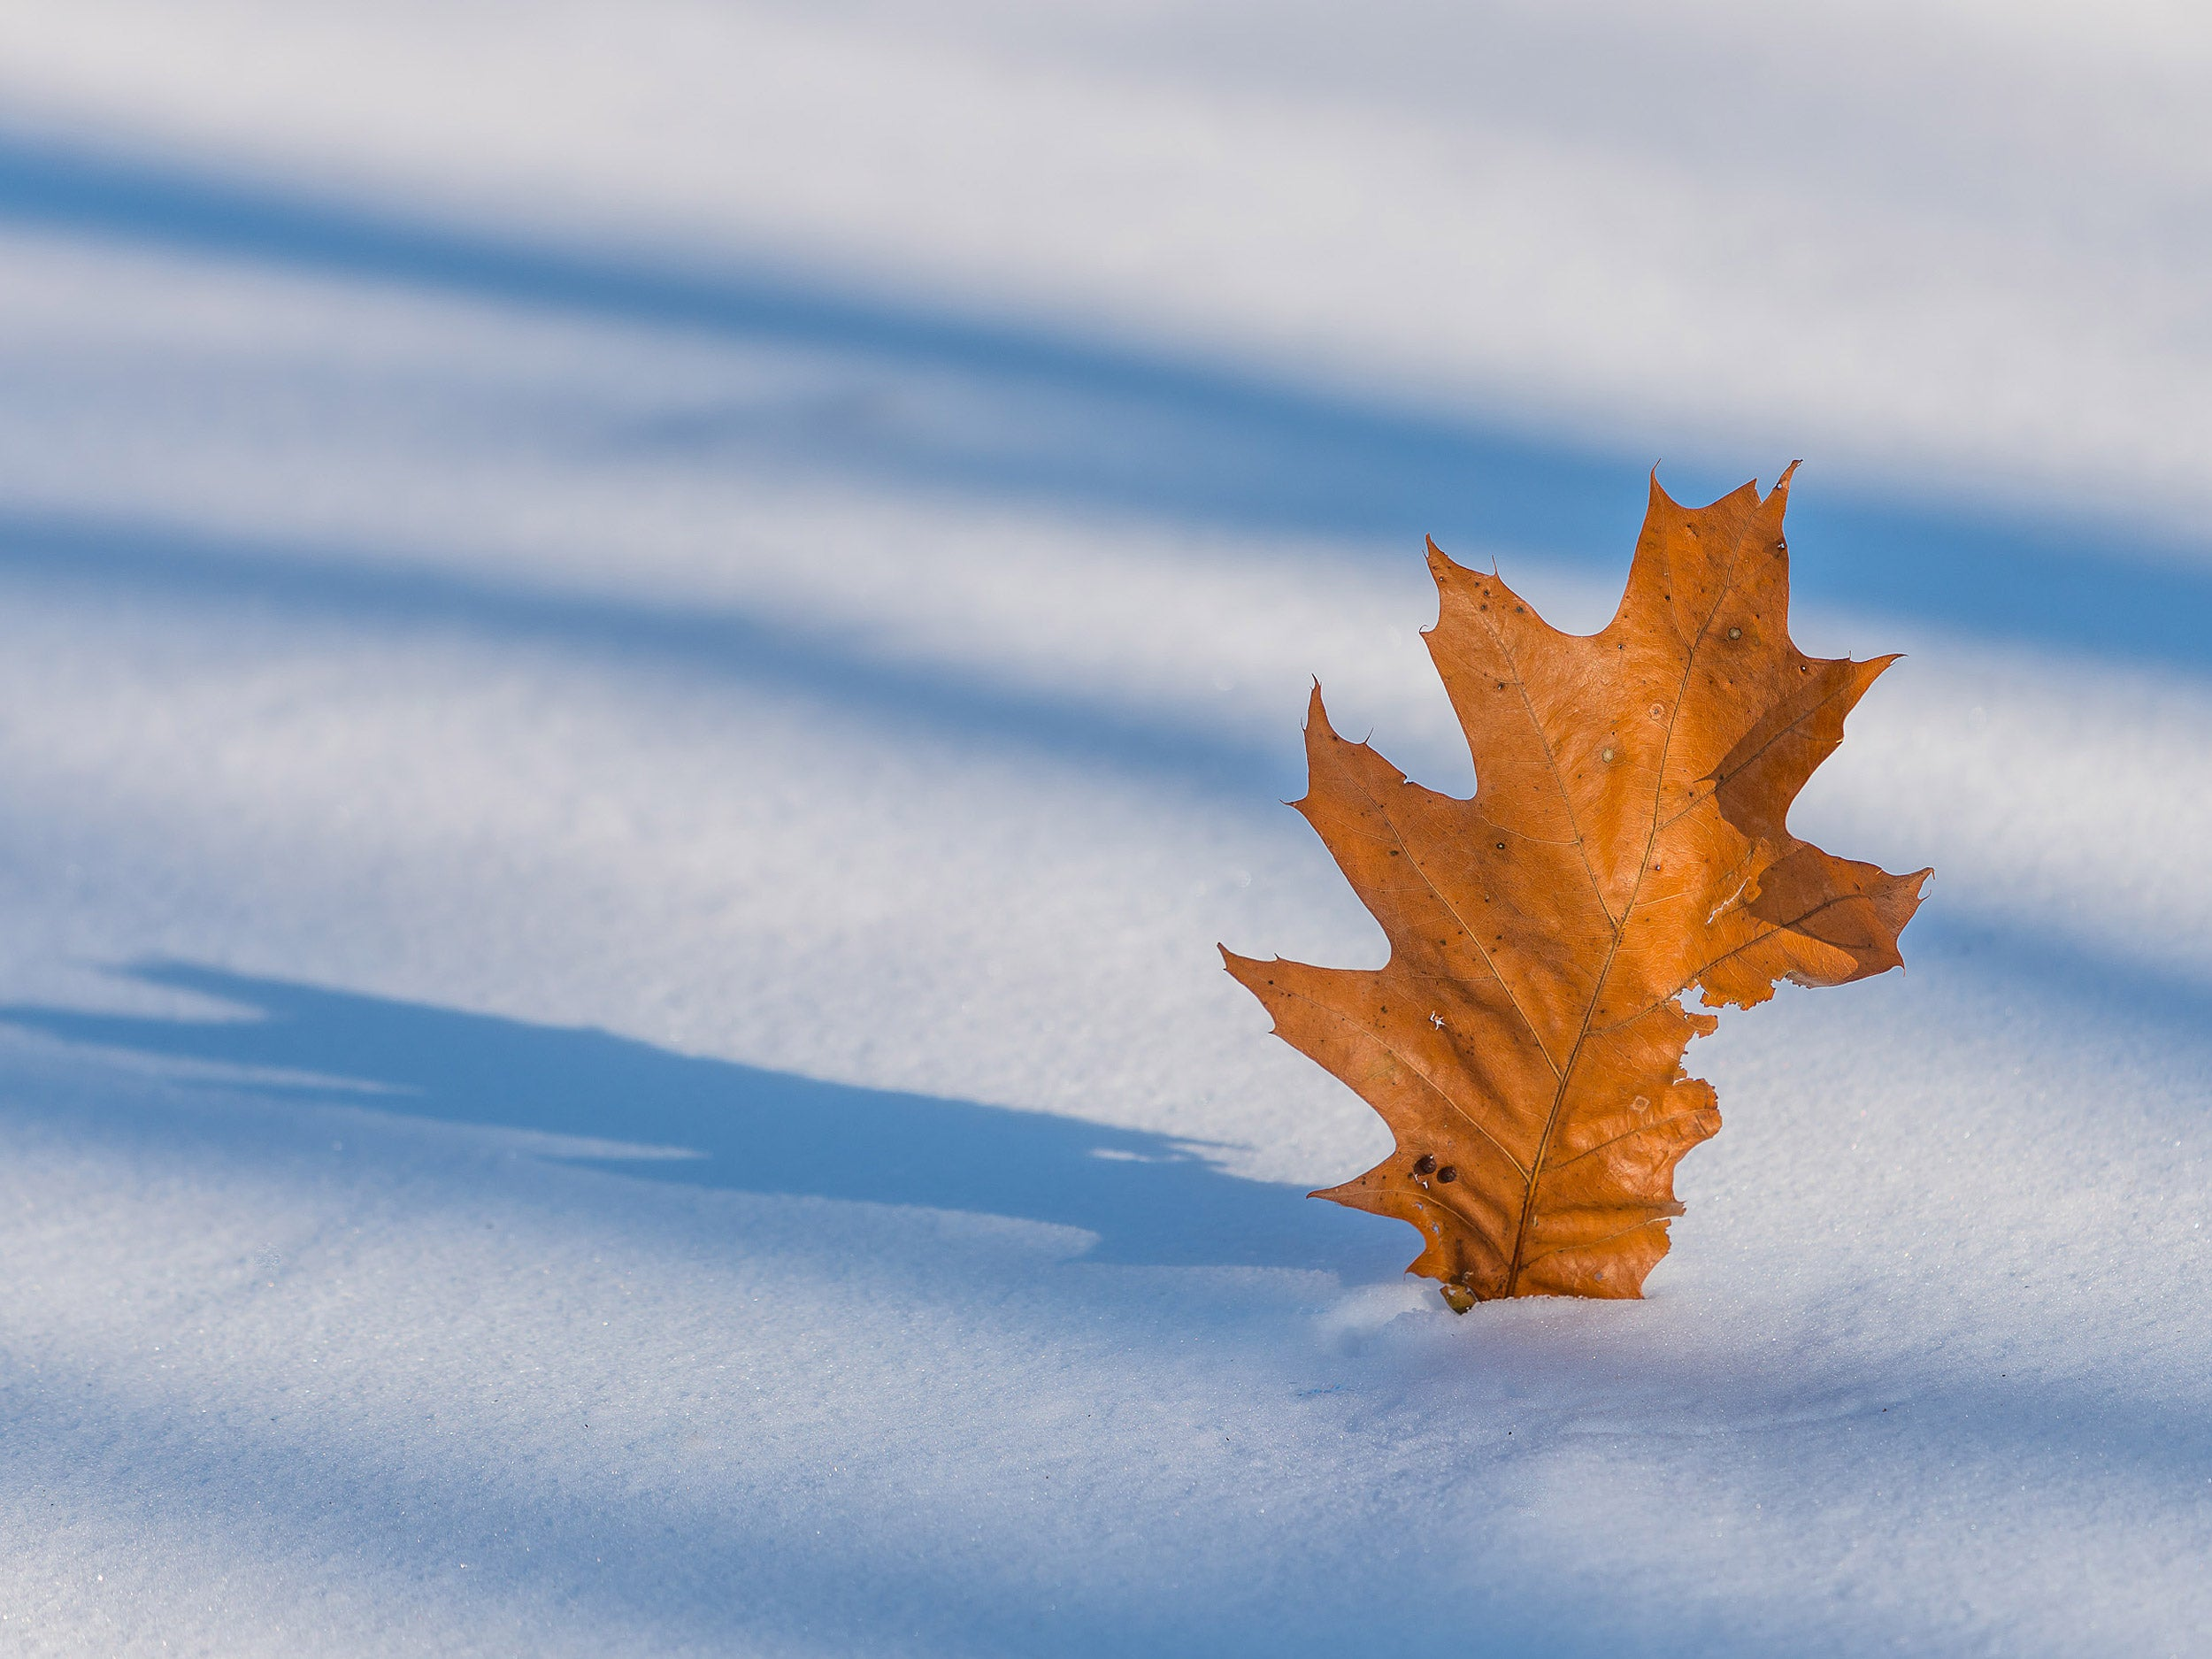 Oak leaf on snow.